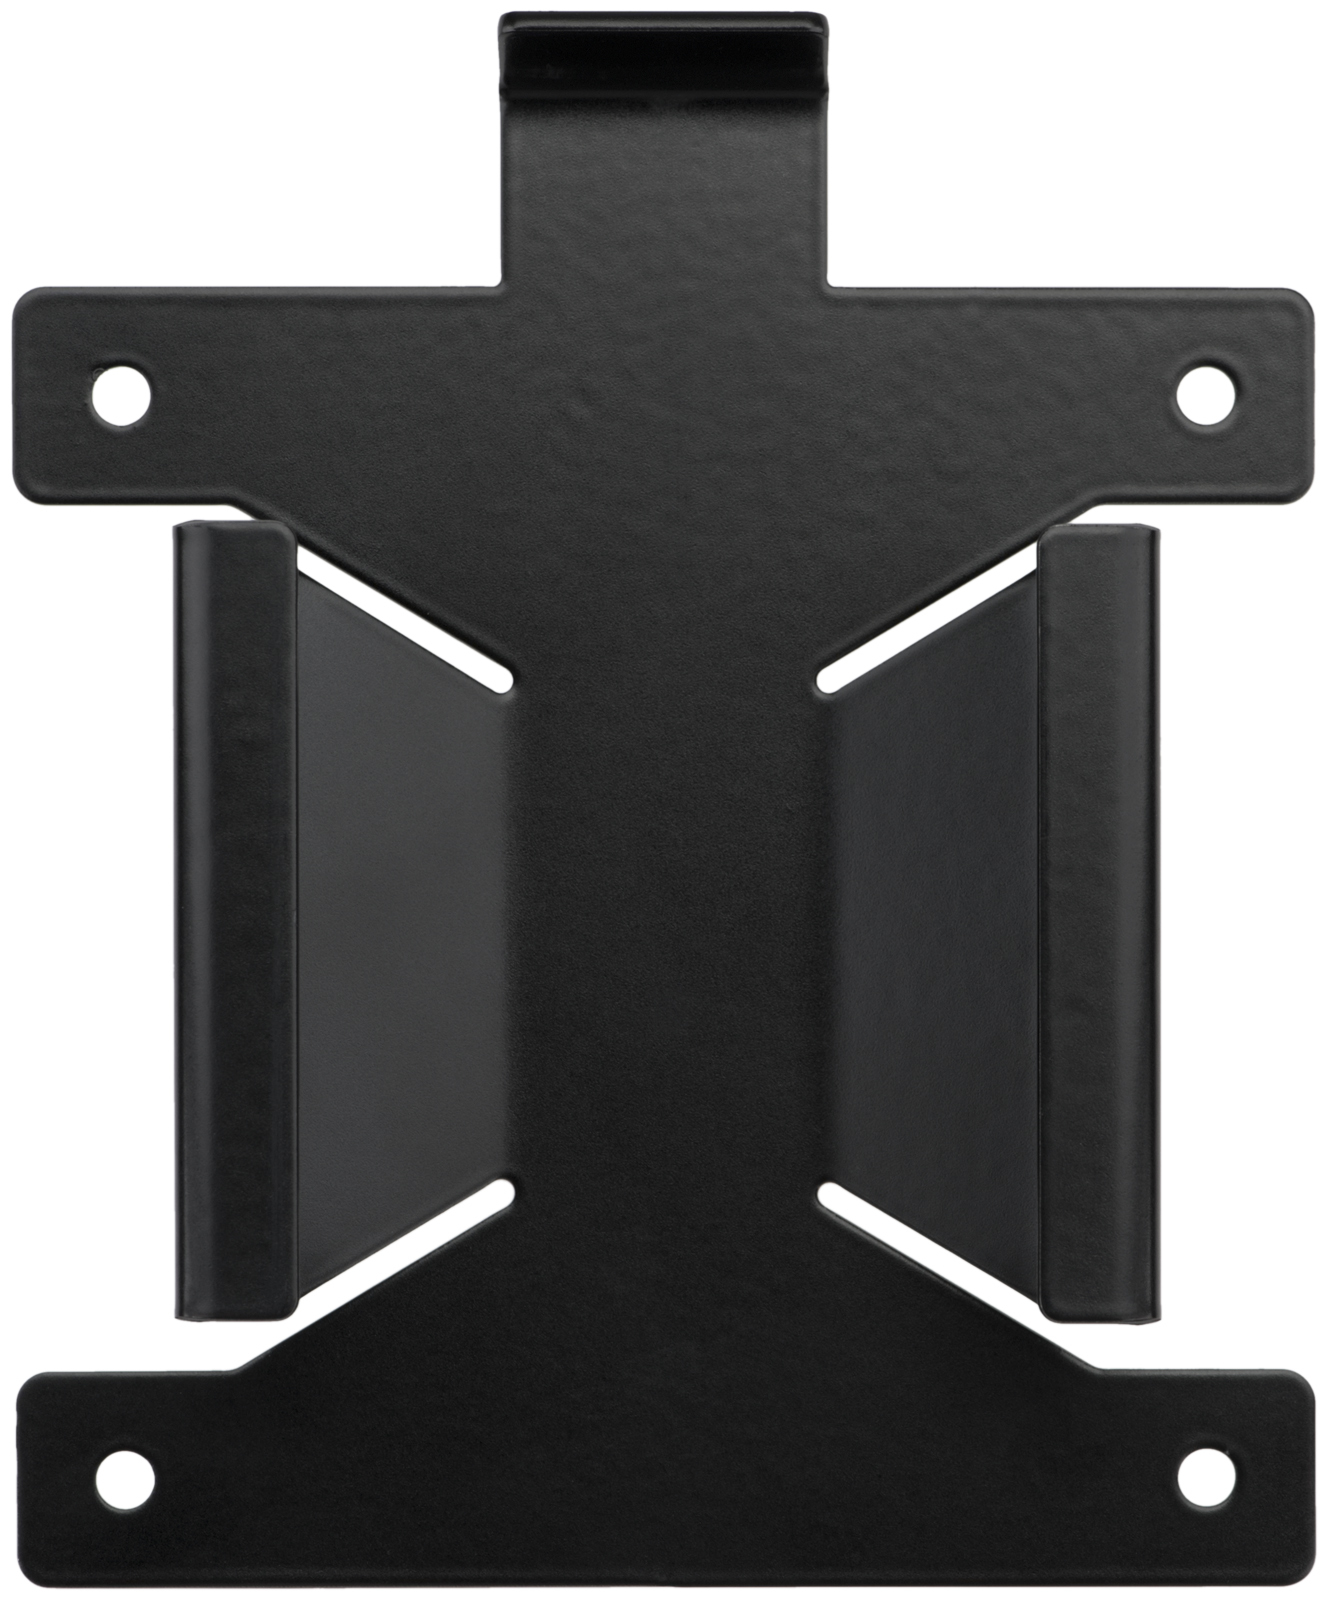 IIYAMA VESA Mounting Kit for Small Form Factor MD BRPCV02 PC/Media Player Fits on: XB2483HS, XB2783HS, XB2779QS